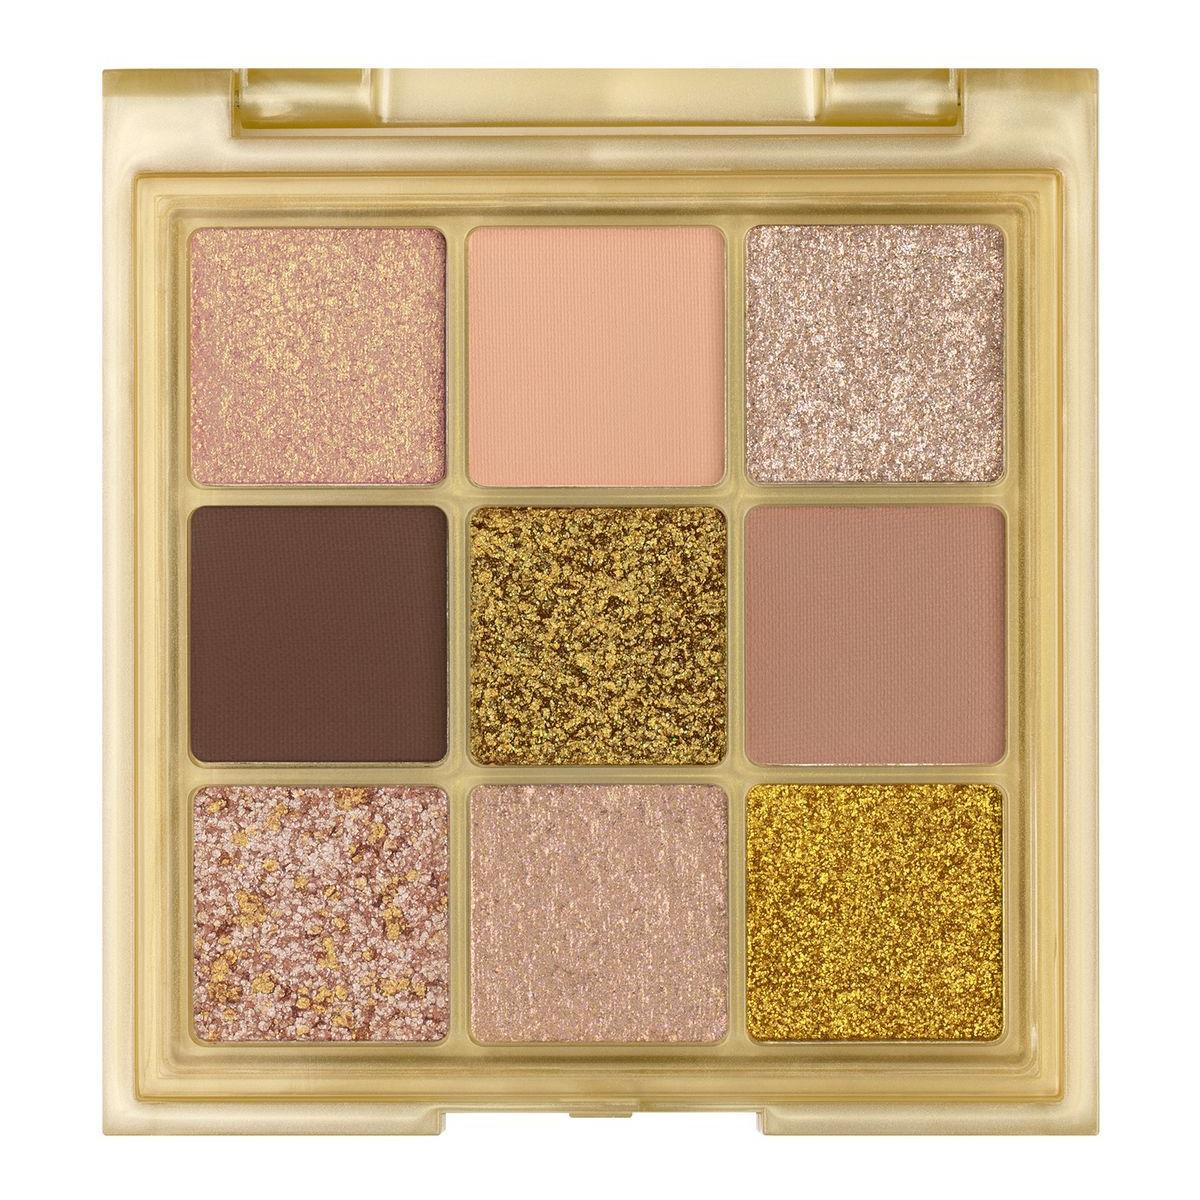 Huda Beauty Gold Obsessions Palette Open Front